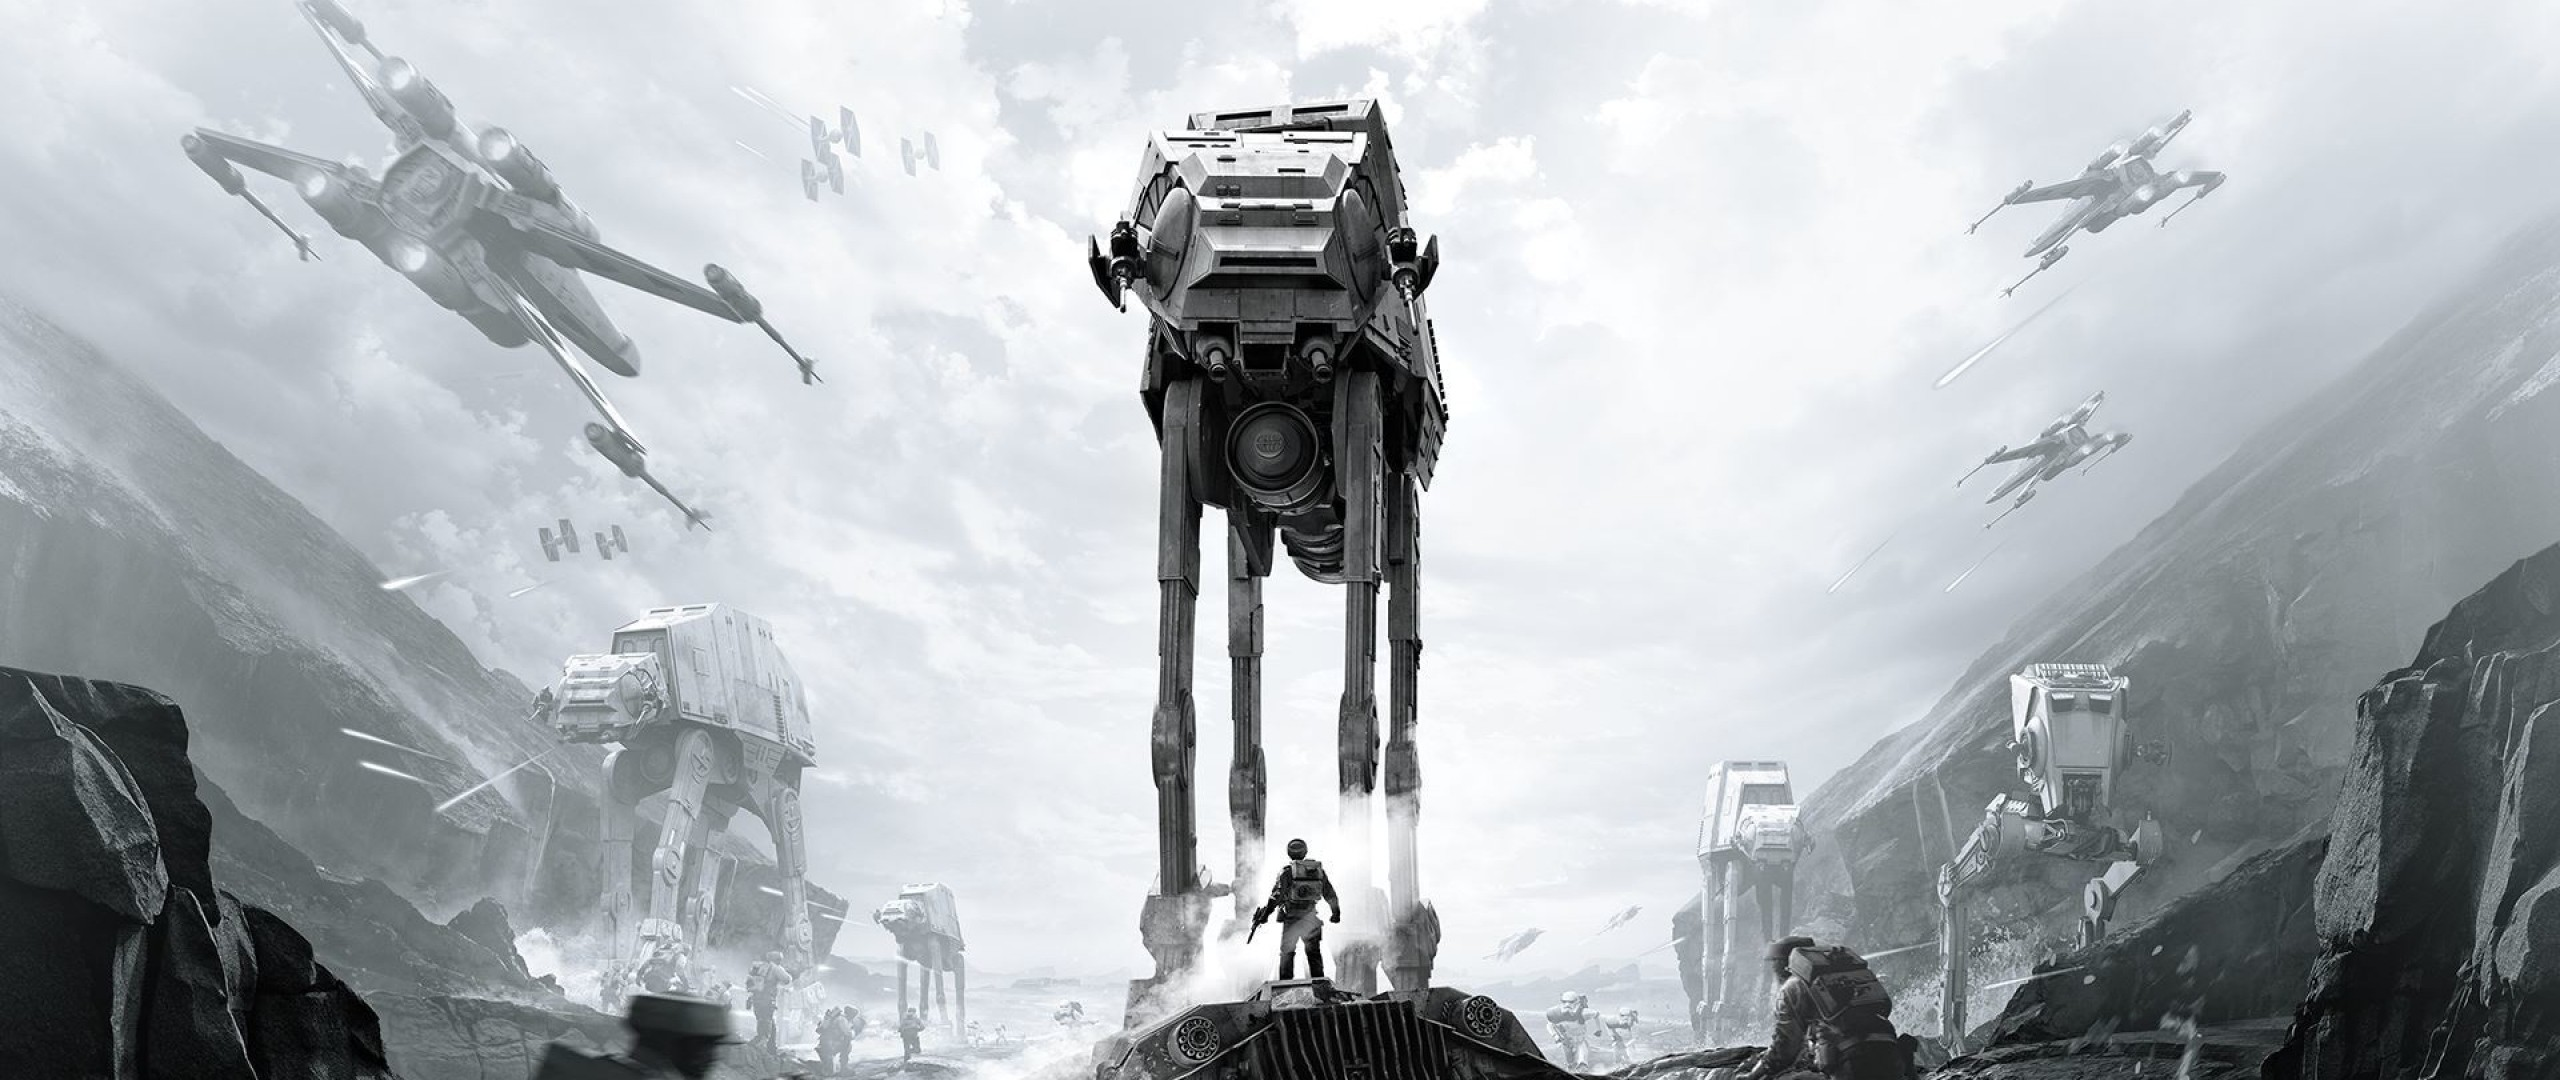 2560x1080  Wallpaper star wars battlefront, ea dice, art